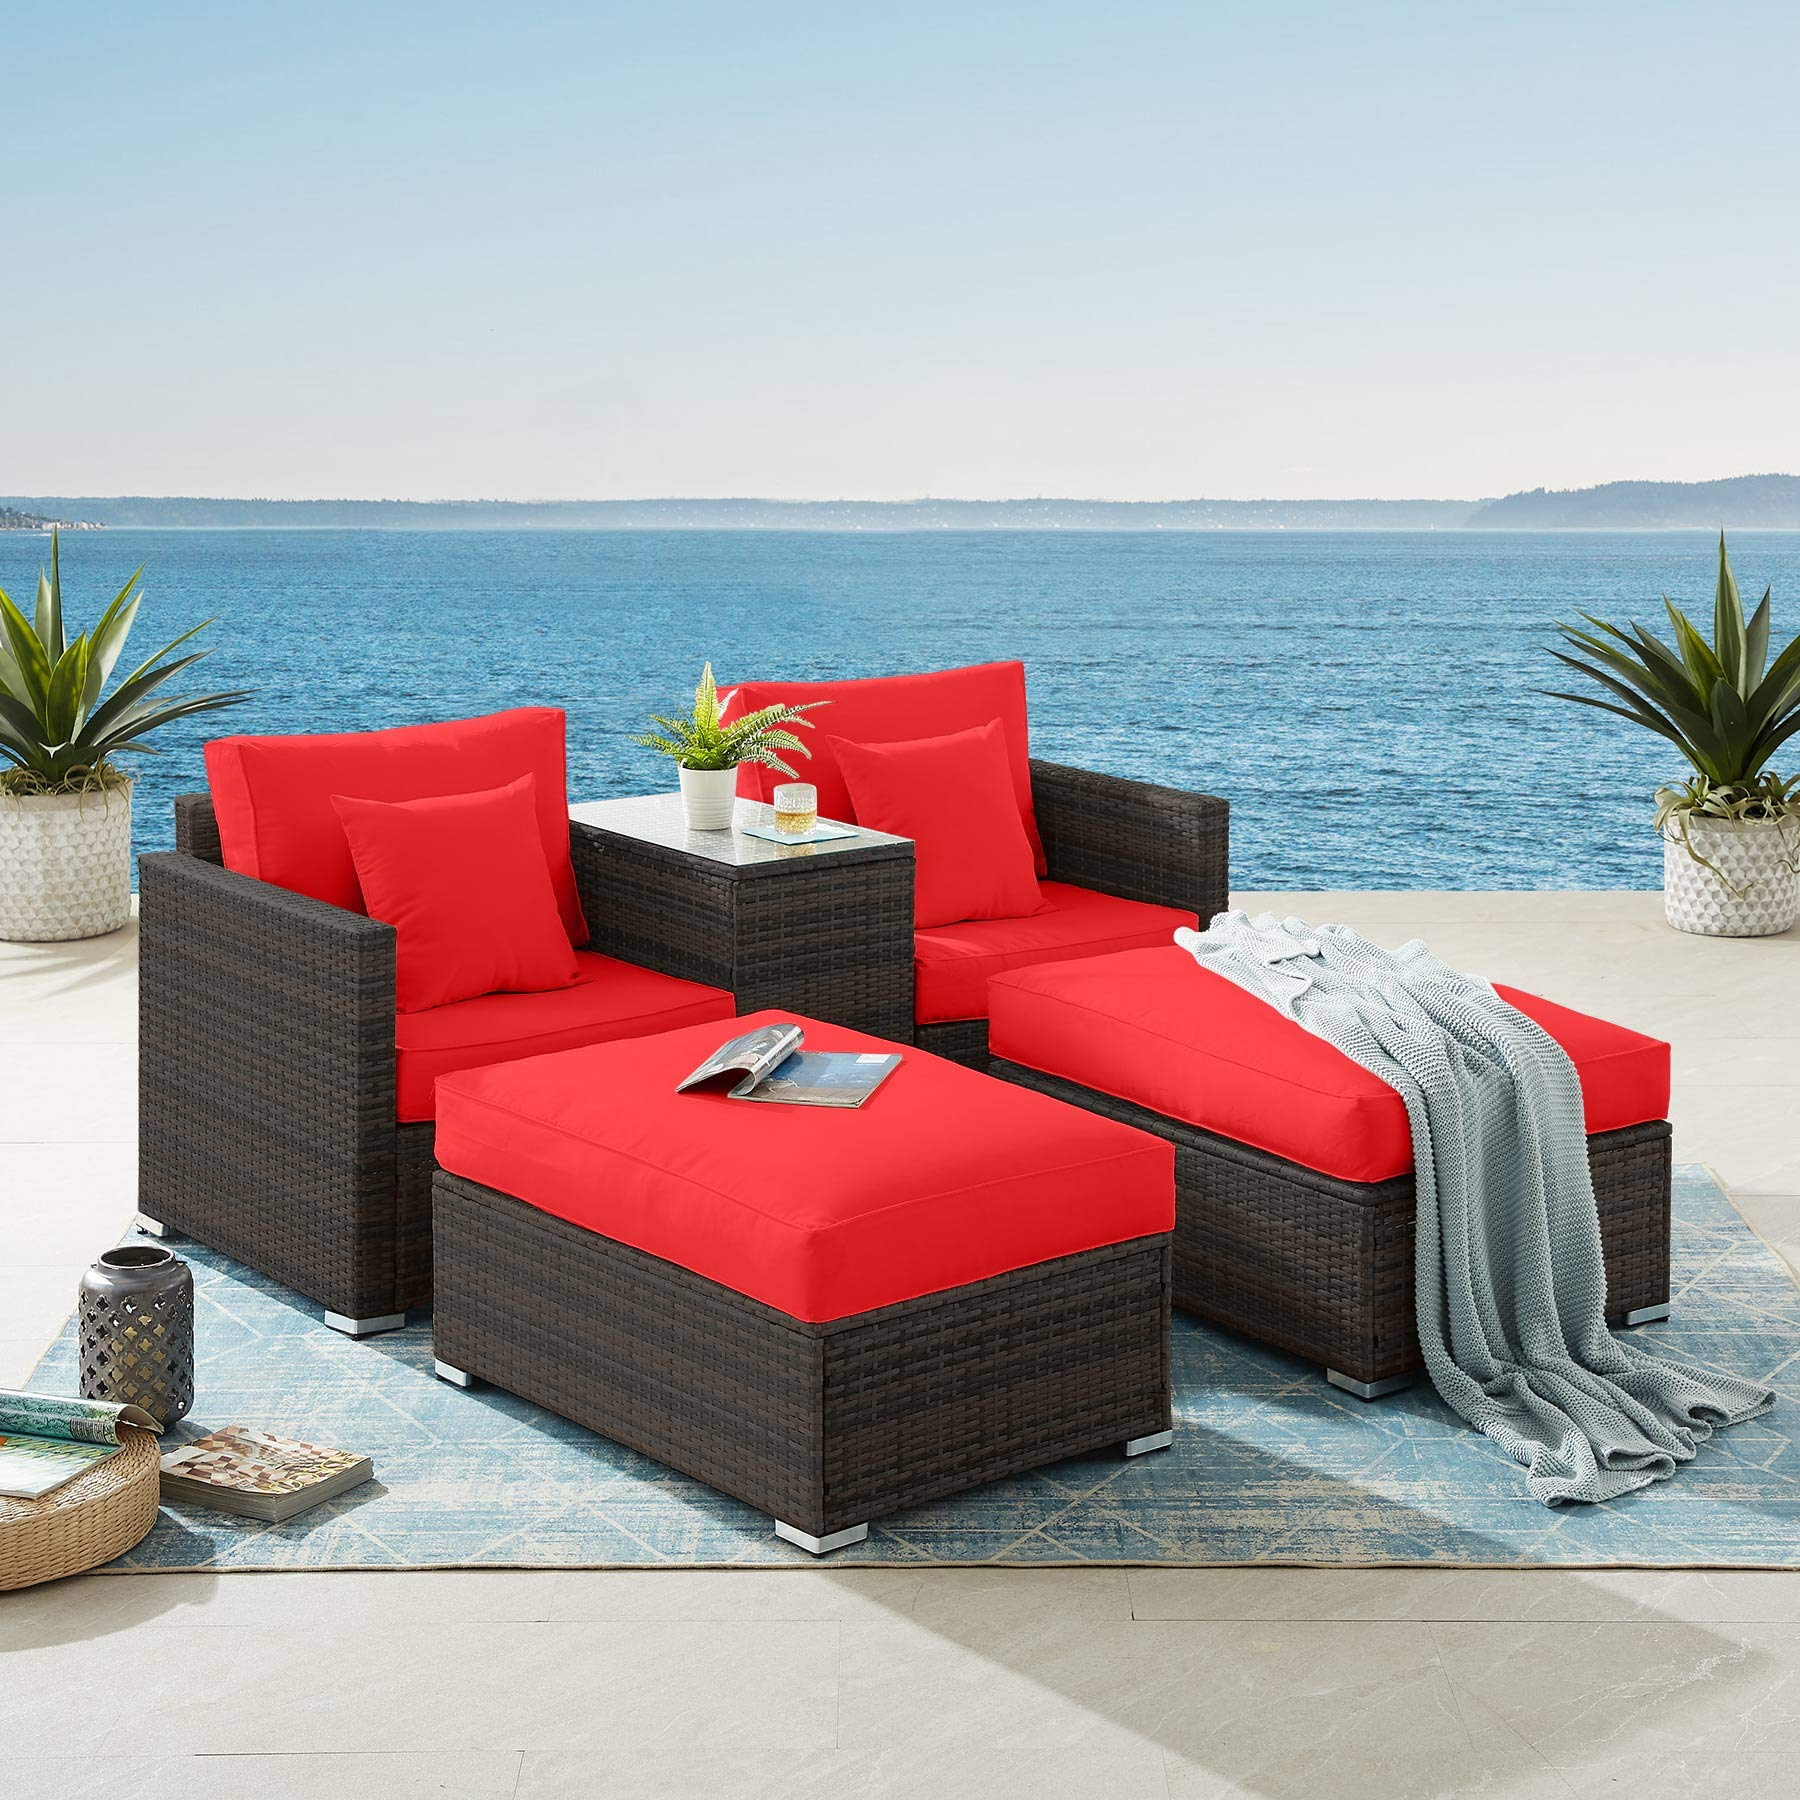 tribesigns 5 pieces patio furniture set outdoor patio lounge chair ottoman set with storage table cushions pe rattan wicker sectional conversation